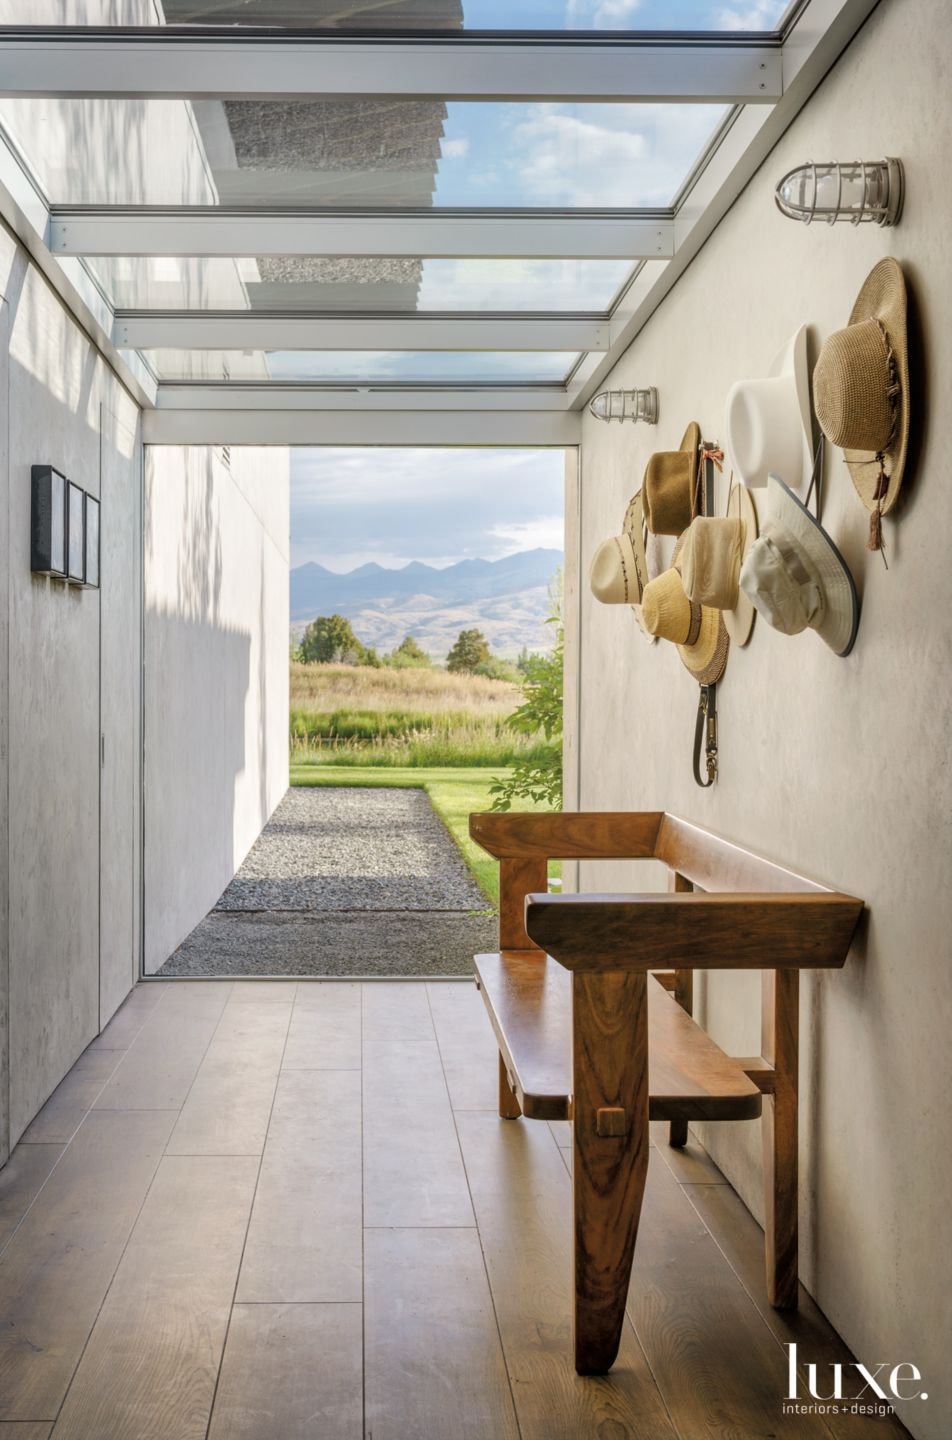 Glass-Ceilinged Vestibule Blends Inside & Out in Montana